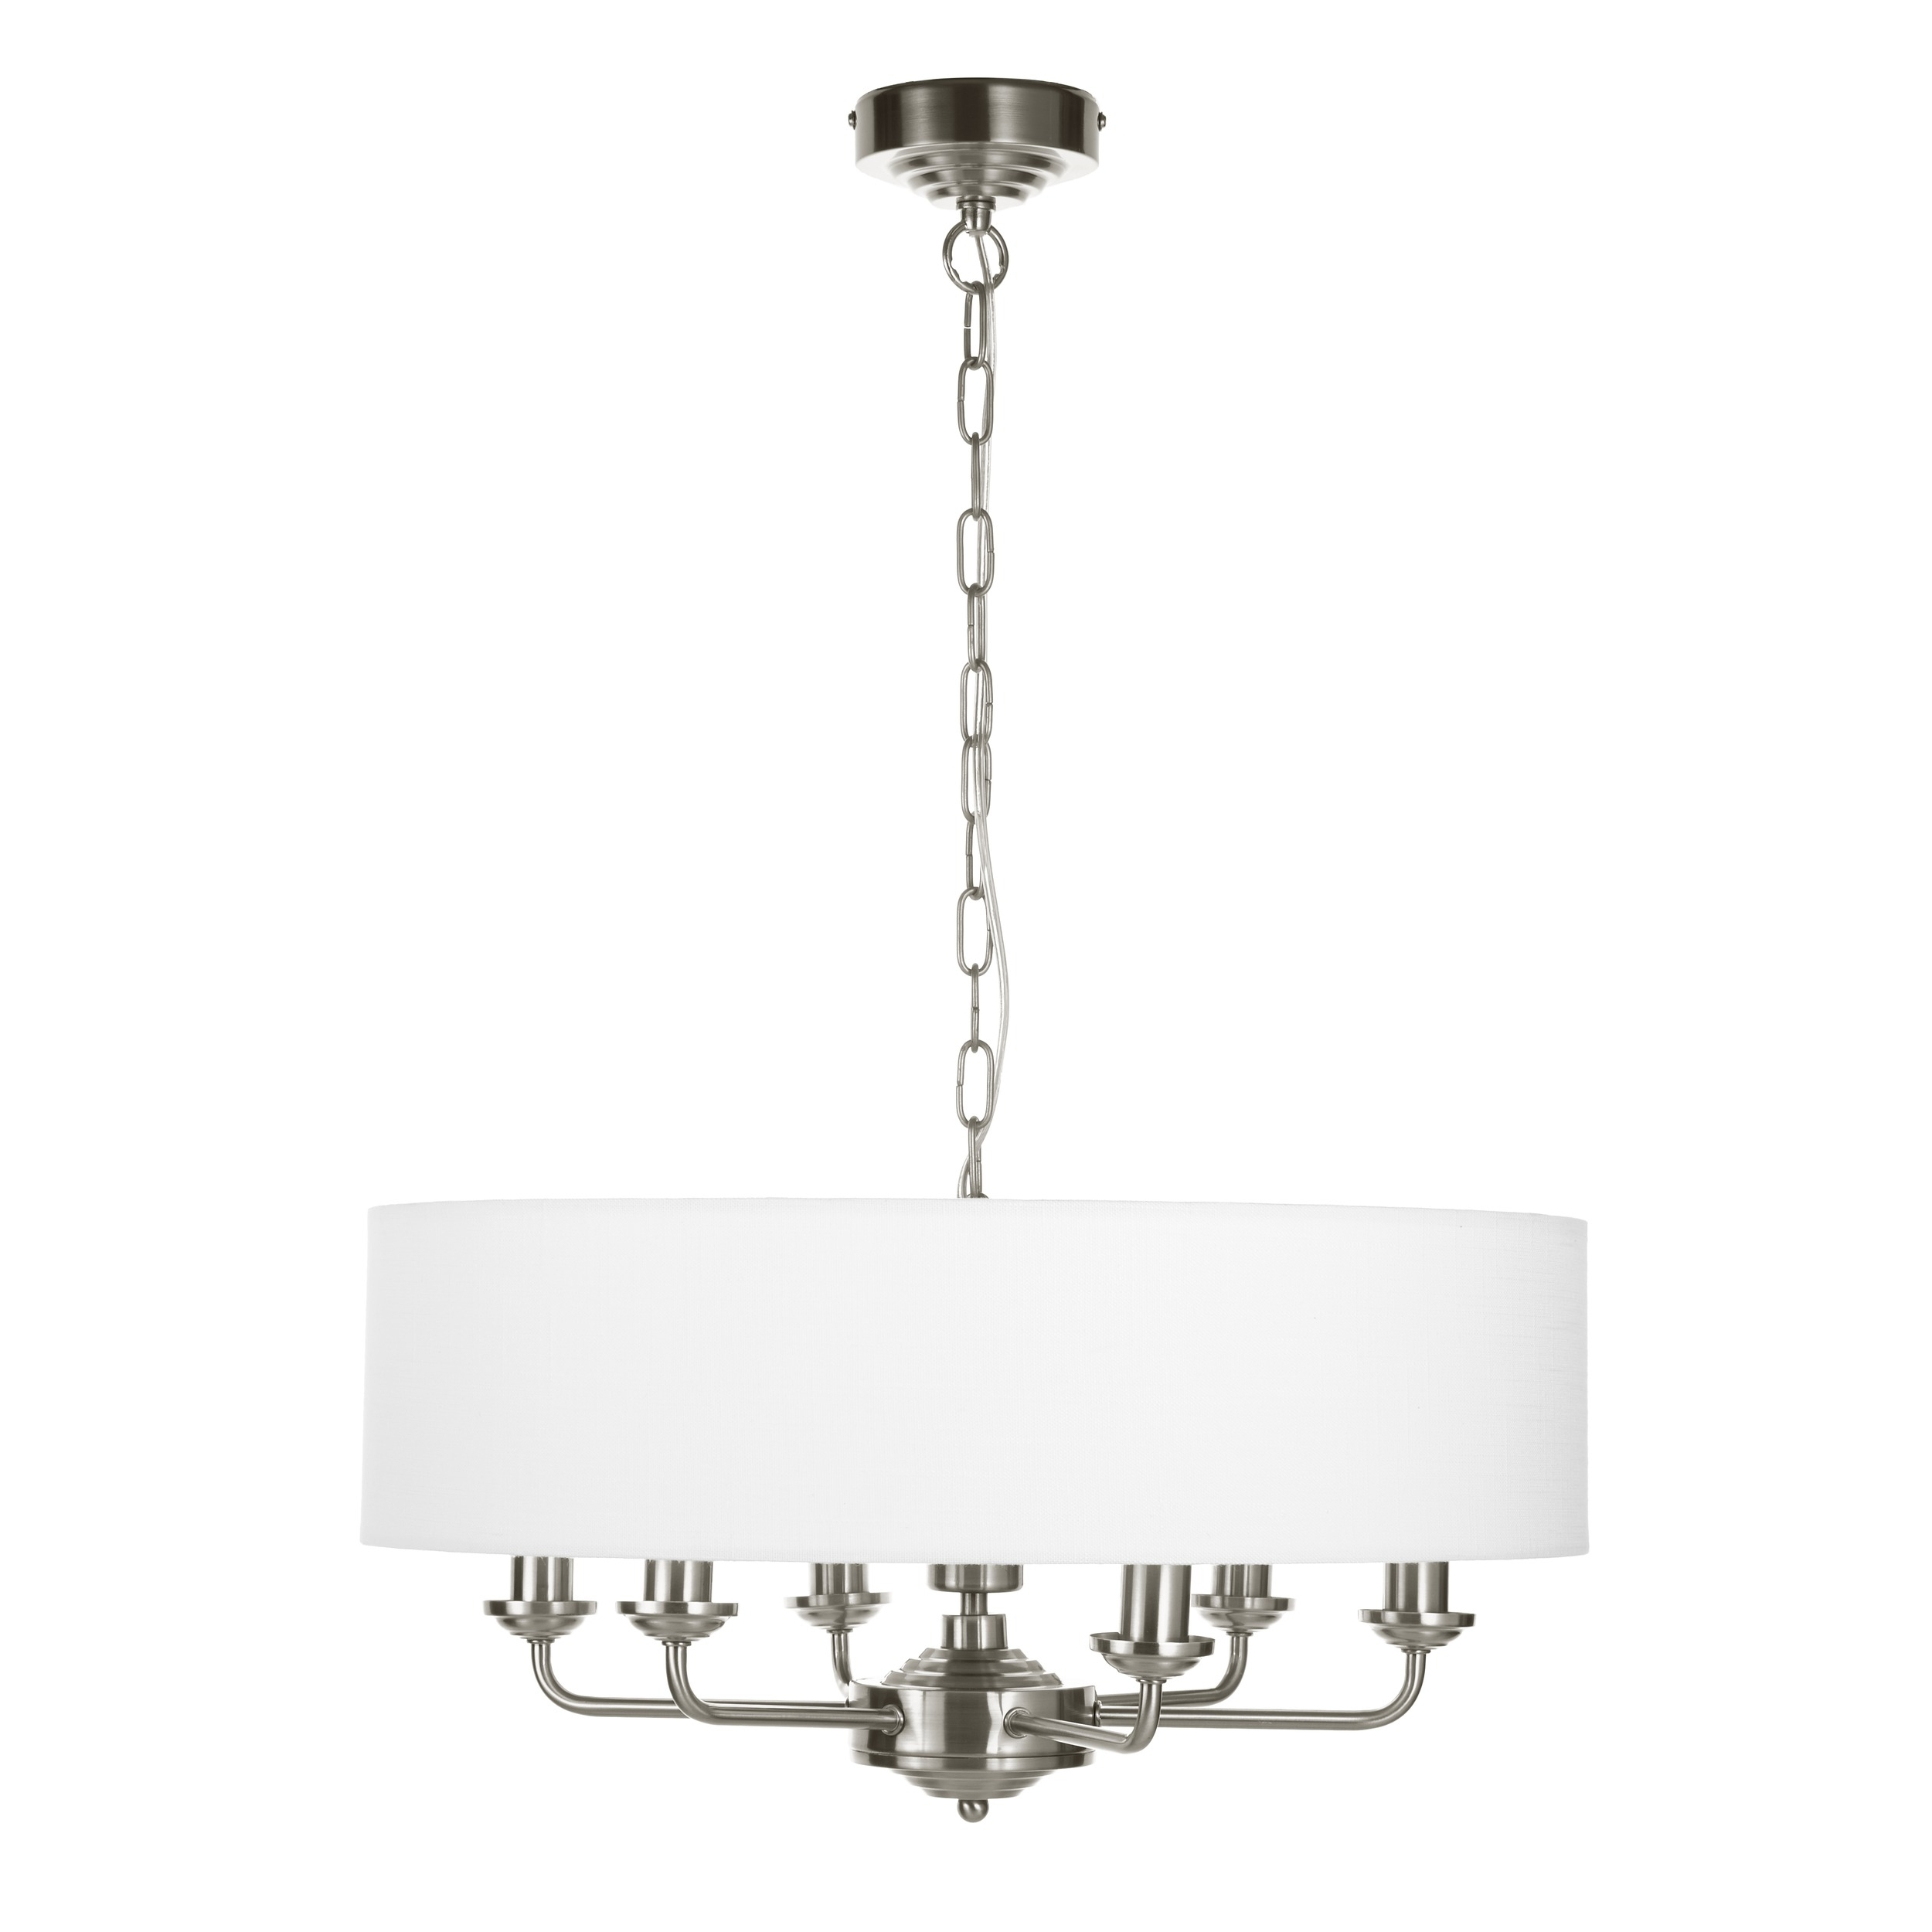 Recent Chrome Chandeliers Throughout Sorrento Chrome 6 Arm Chandelier With White Shade (View 13 of 15)